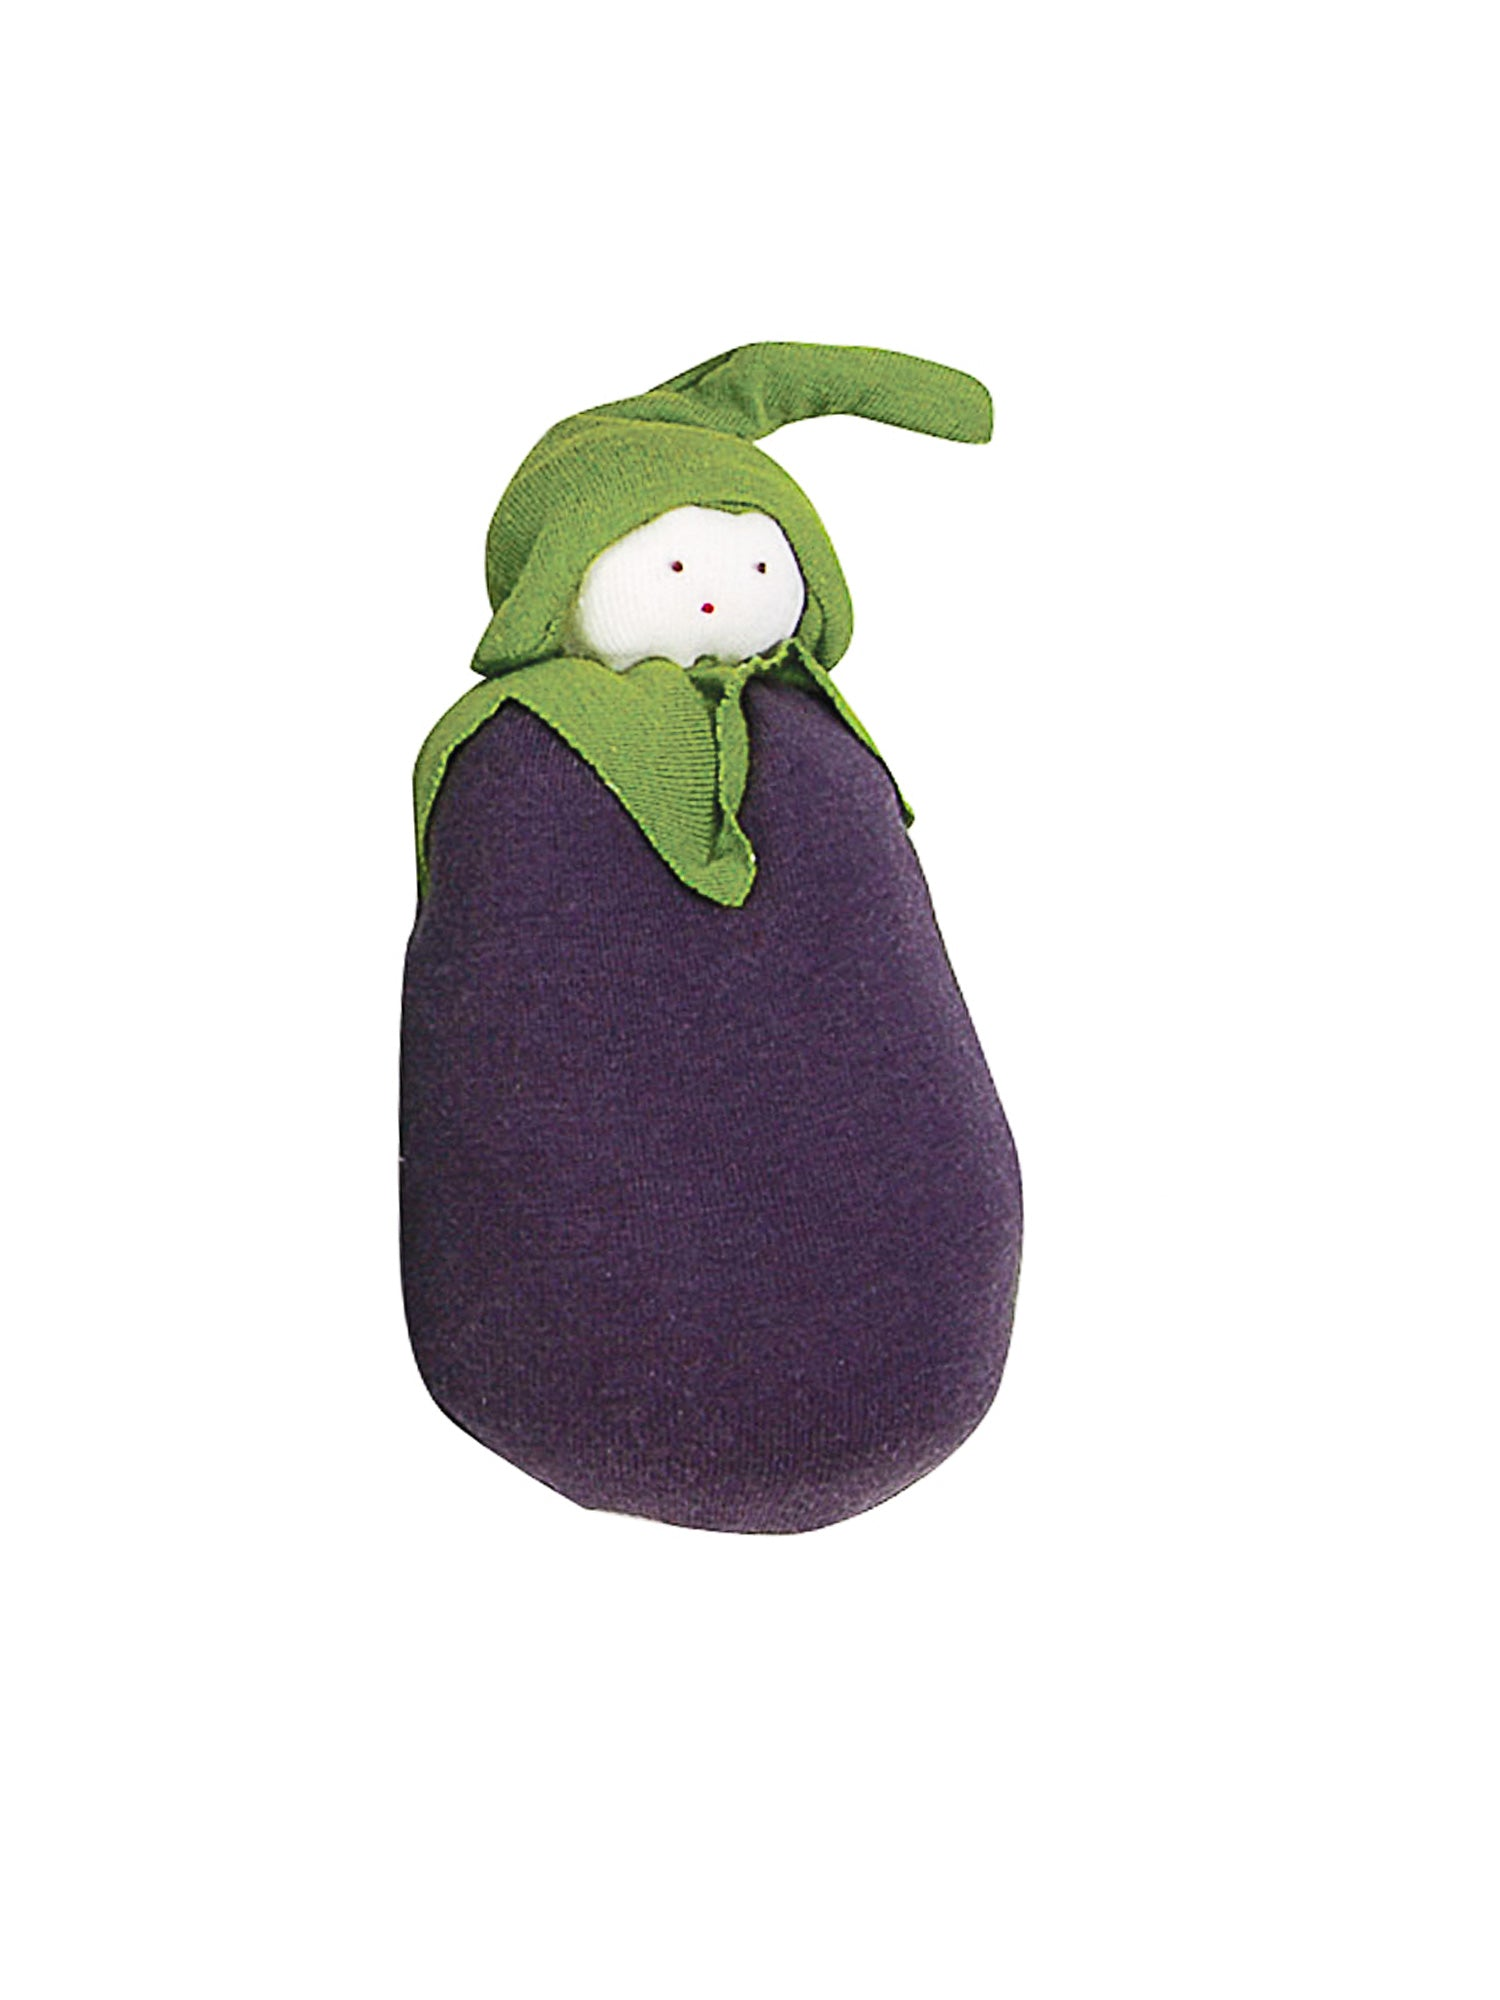 organic-cotton-eggplant-fruit-veggie-stuffed-toy